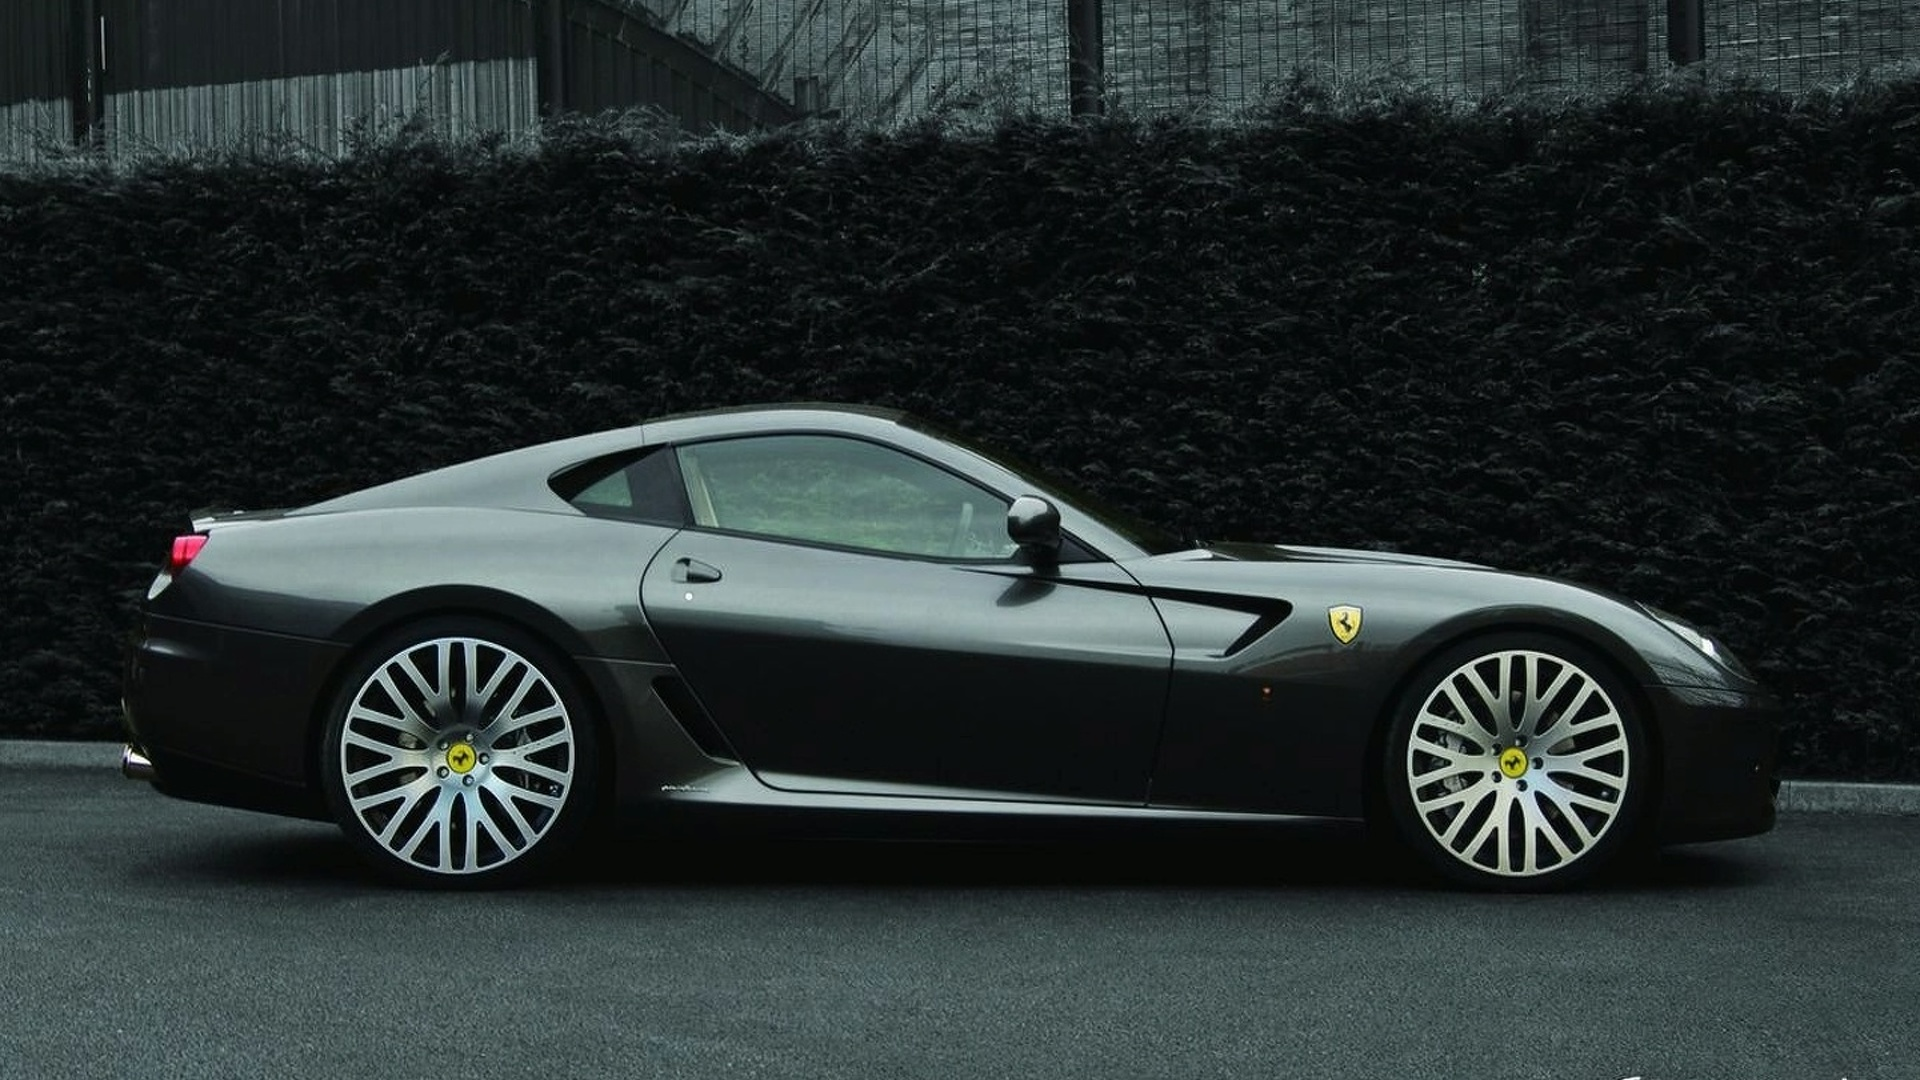 Ferrari 599 Gtb With Kahn Design F1 X Carbon Wheels 297319